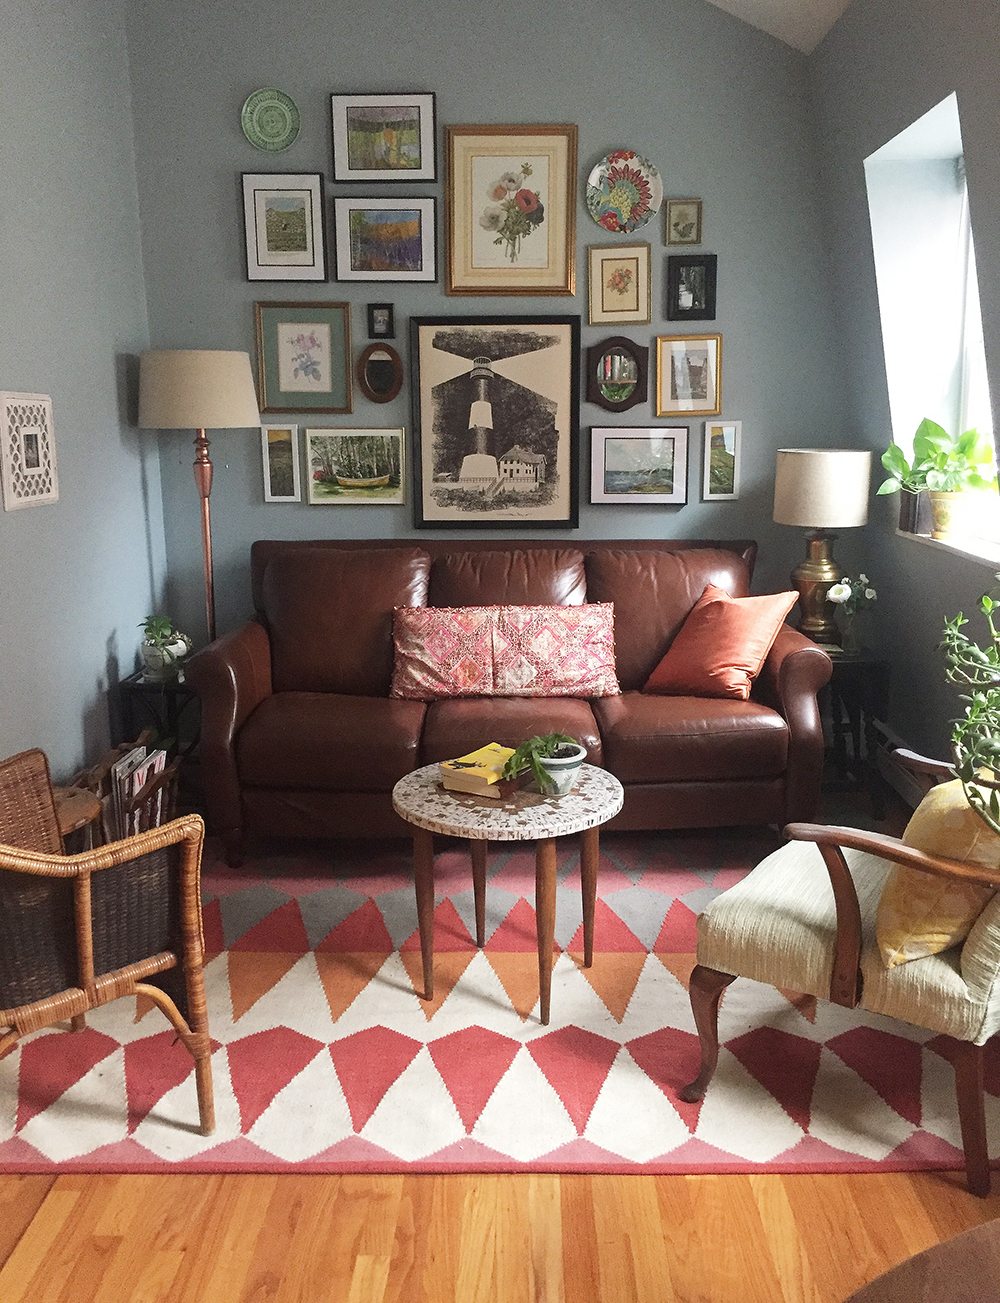 Rosemary's Petite Living Room: After